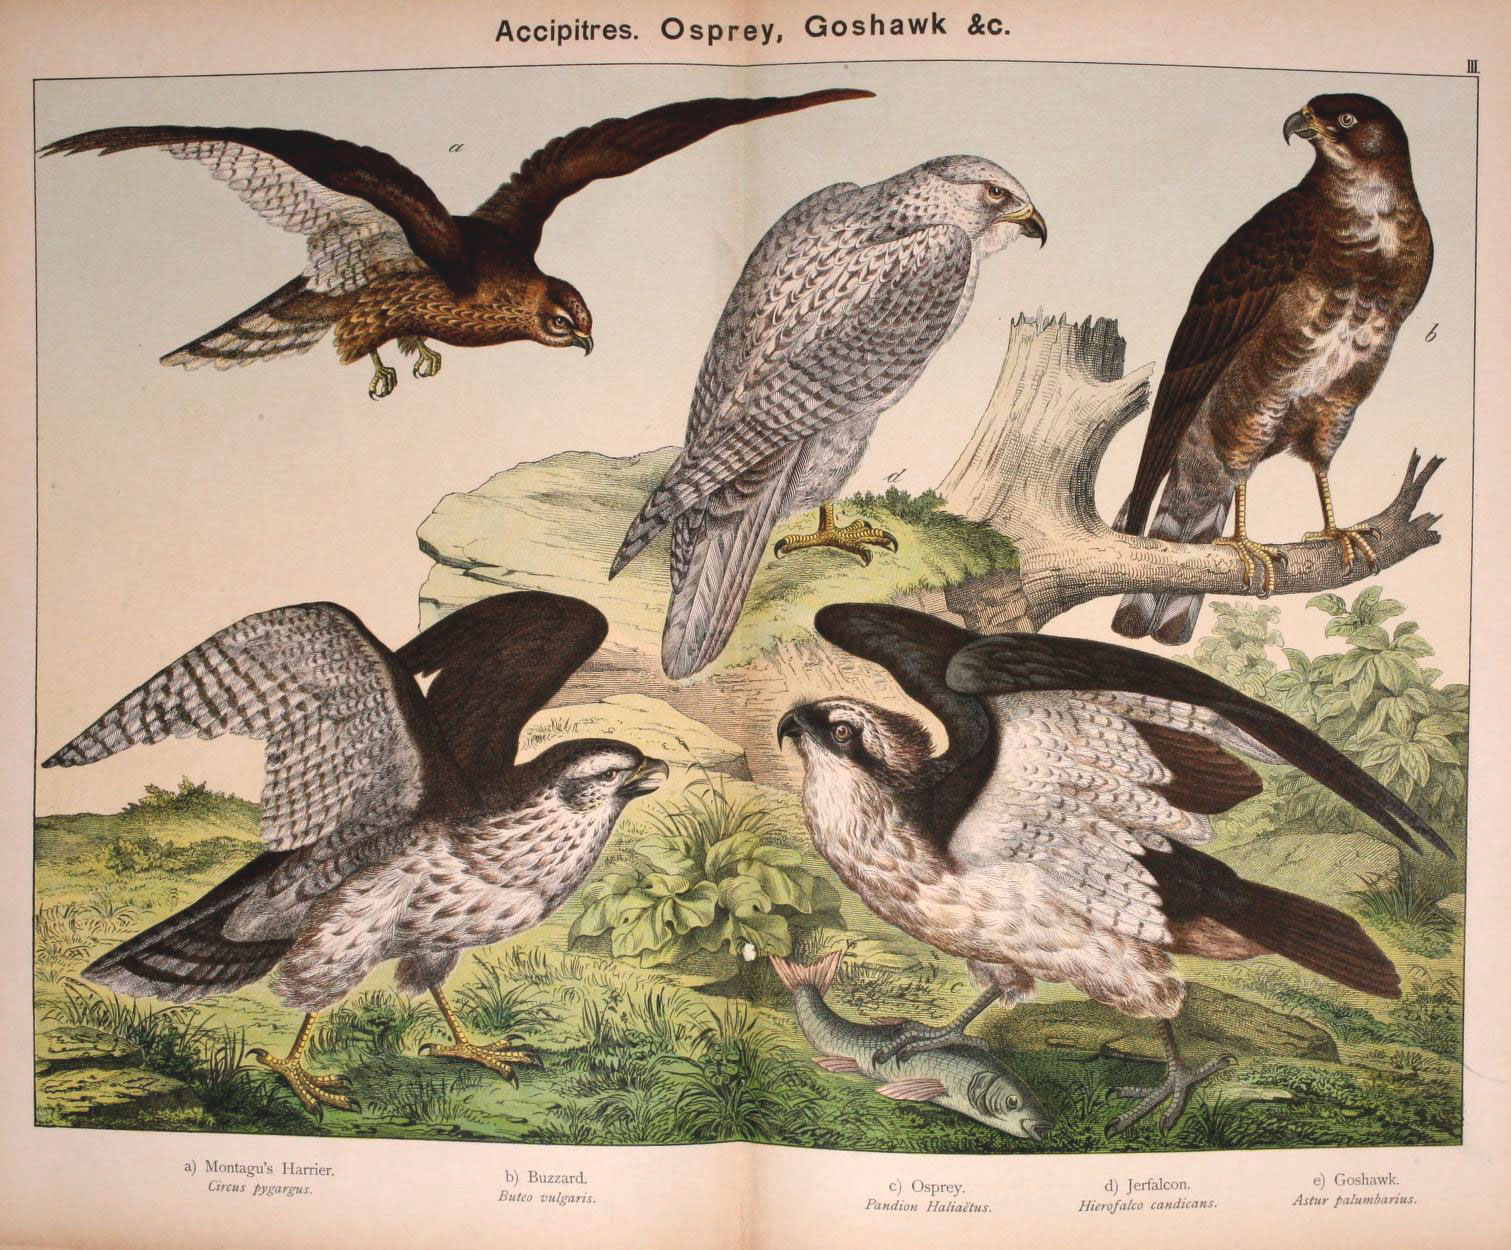 Natural history of the animal kingdom for the use of young people Brighton :E. & J.B. Young and Co.,1889. http://www.biodiversitylibrary.org/item/91187